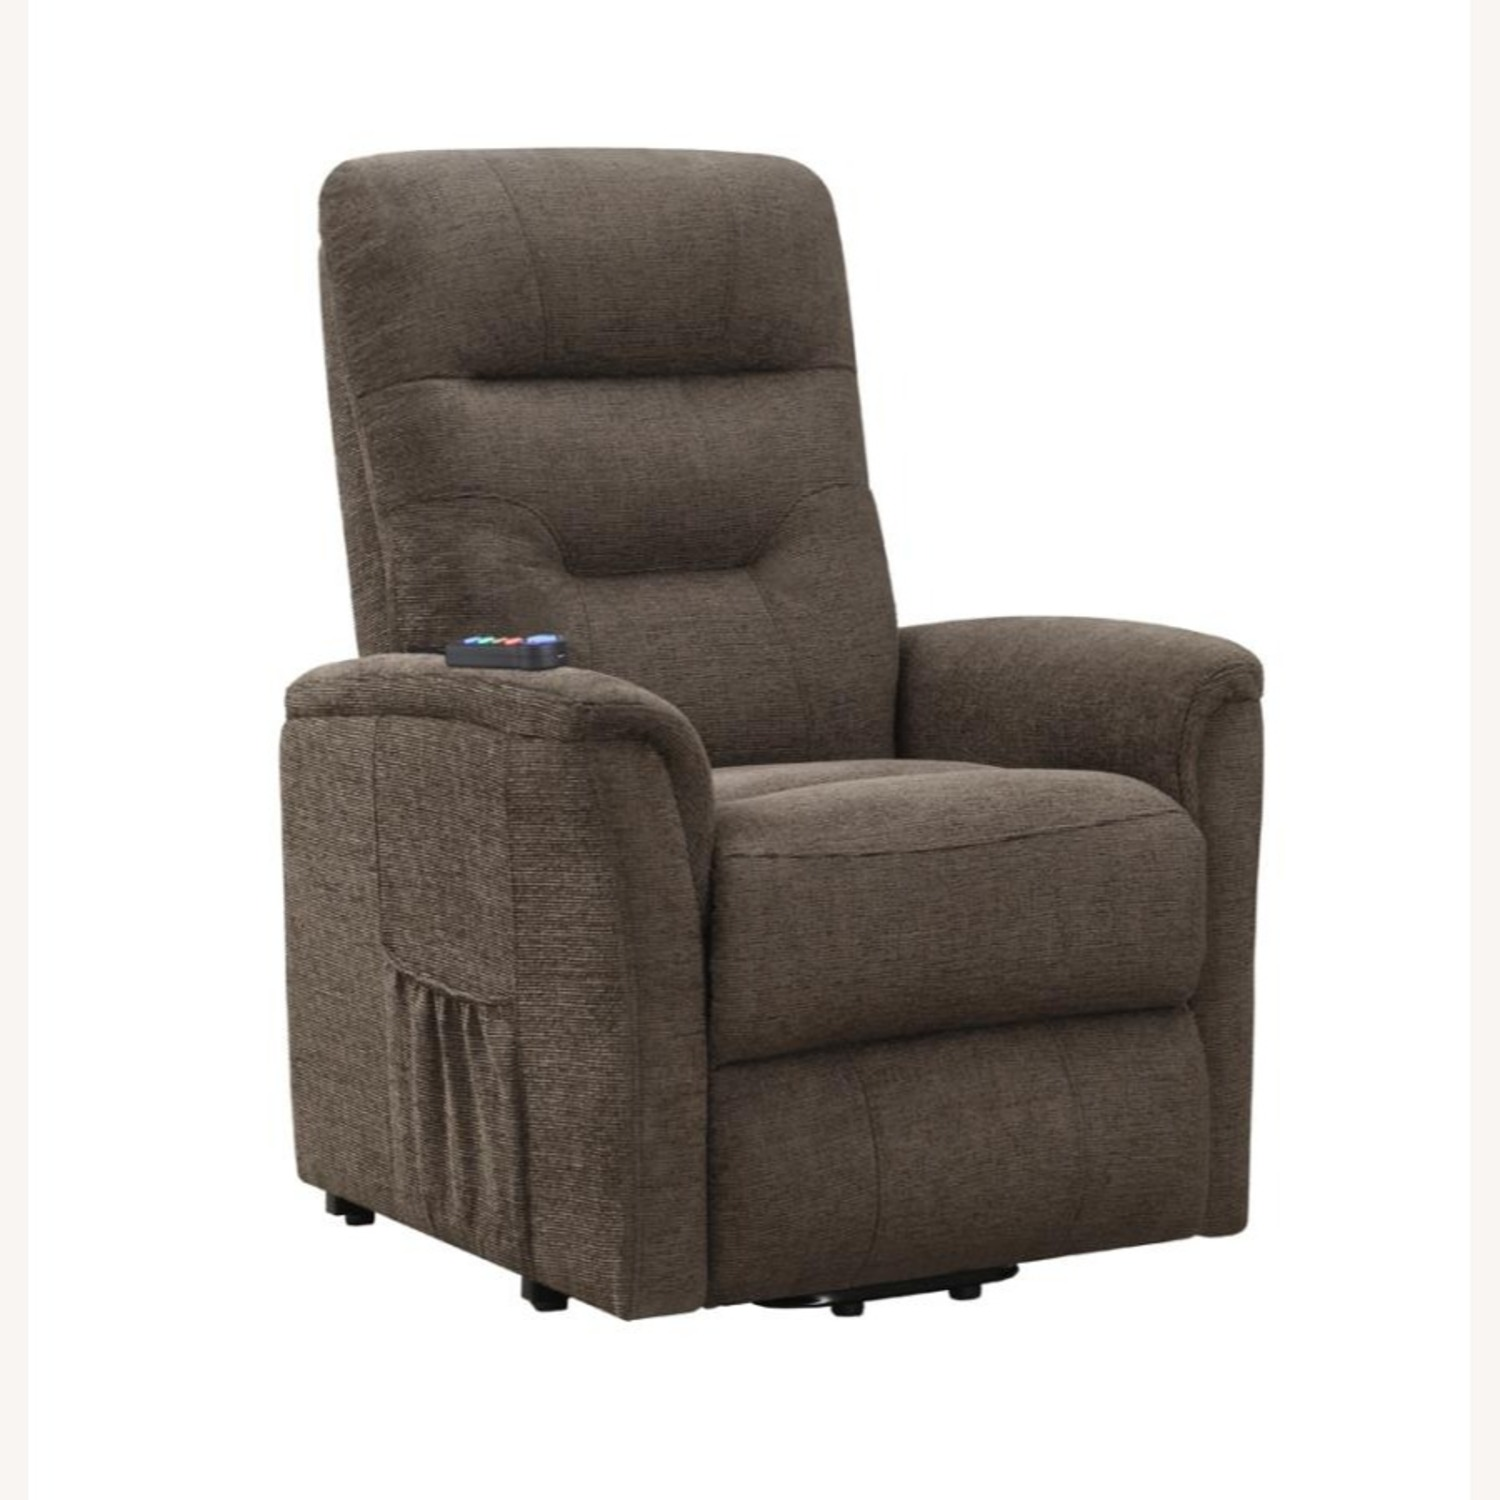 Power Lift Recliner Massage Chair In Brown Leather - image-0